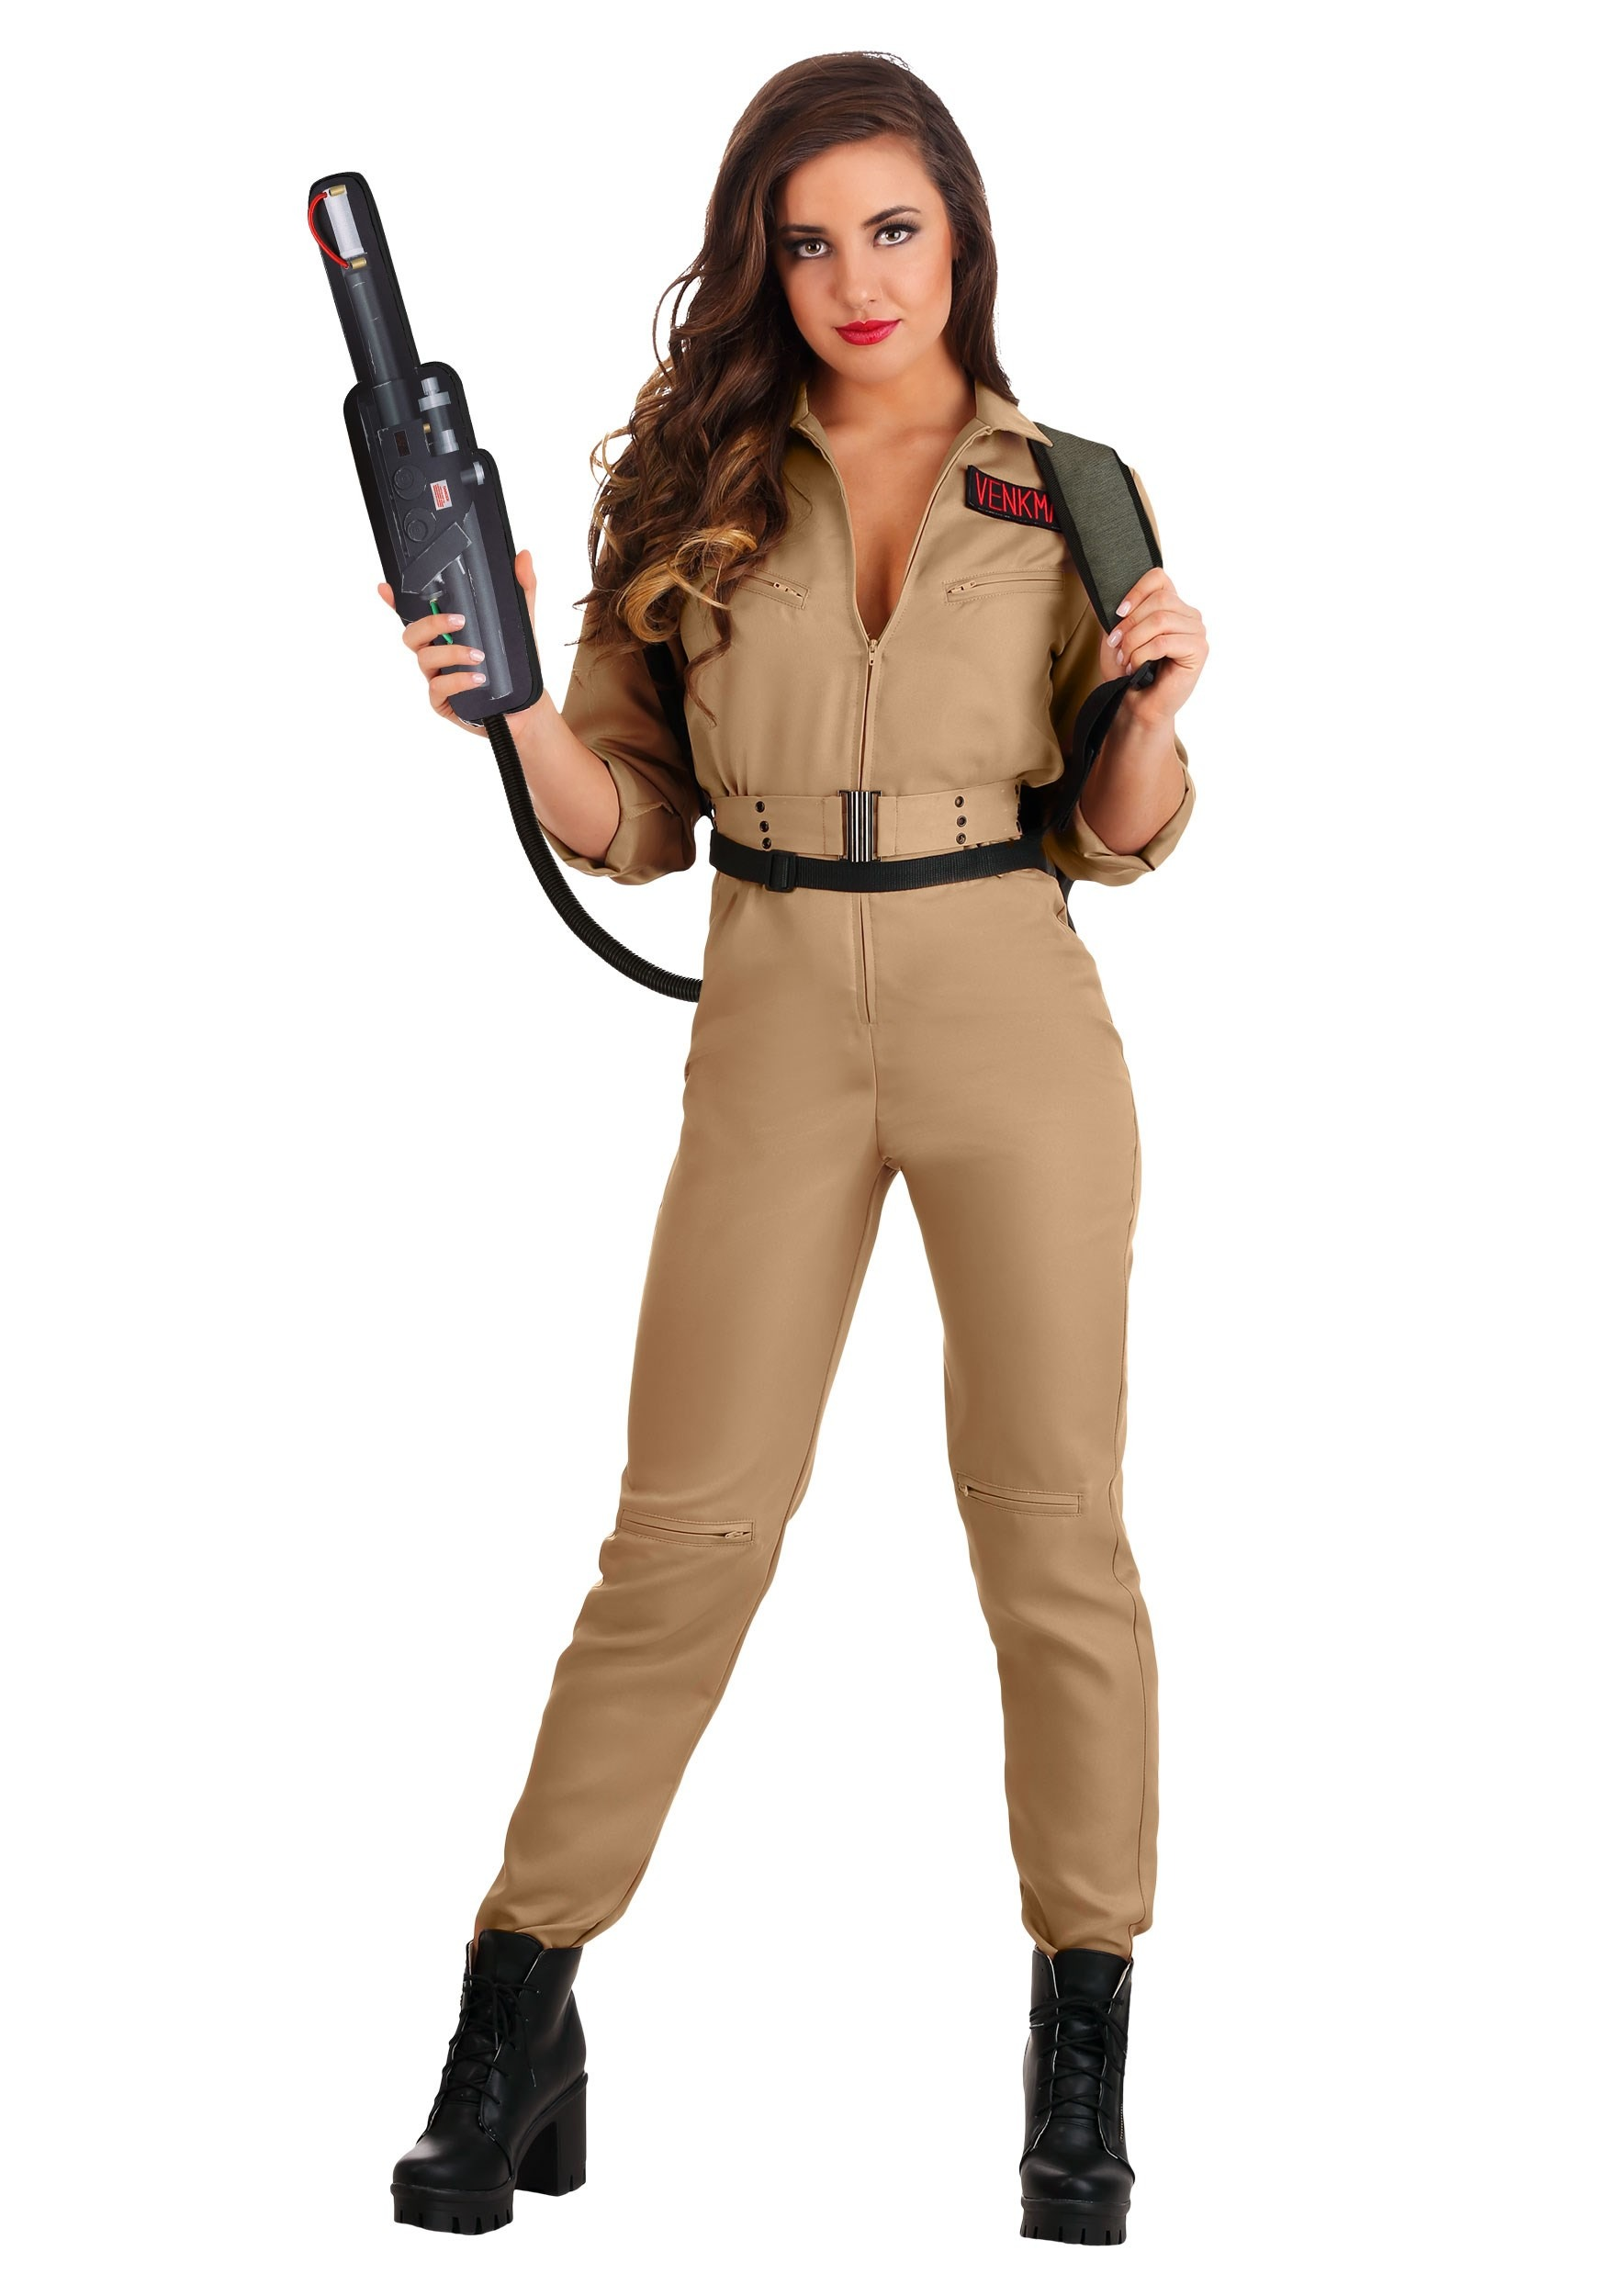 Women's Ghostbusters Costume Jumpsuit